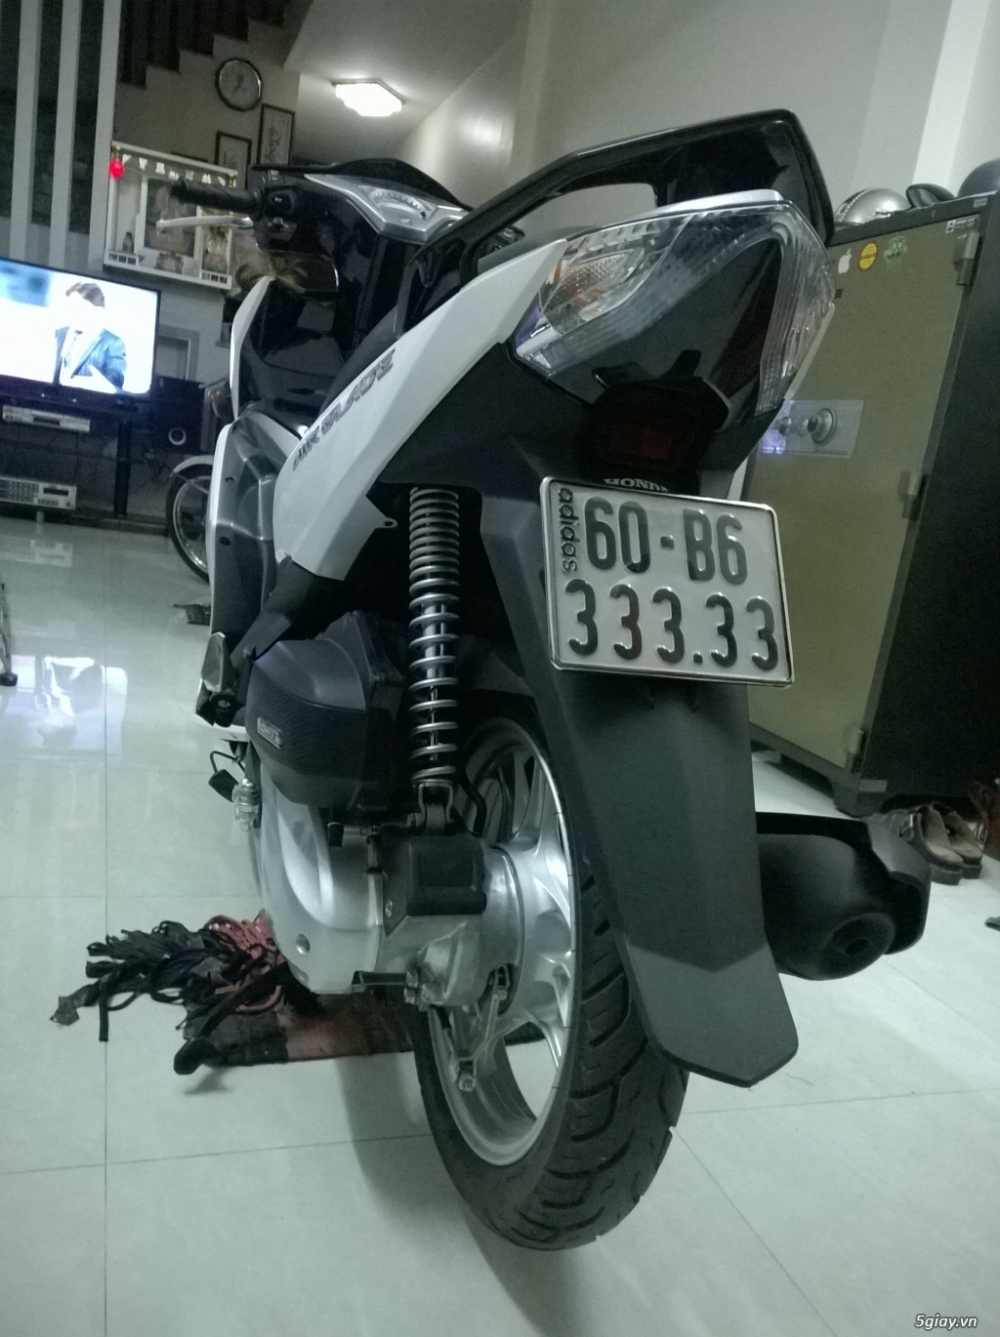 Air Blade FI 125cc moi 99 bien so VIP ngu quy 33333 - 27